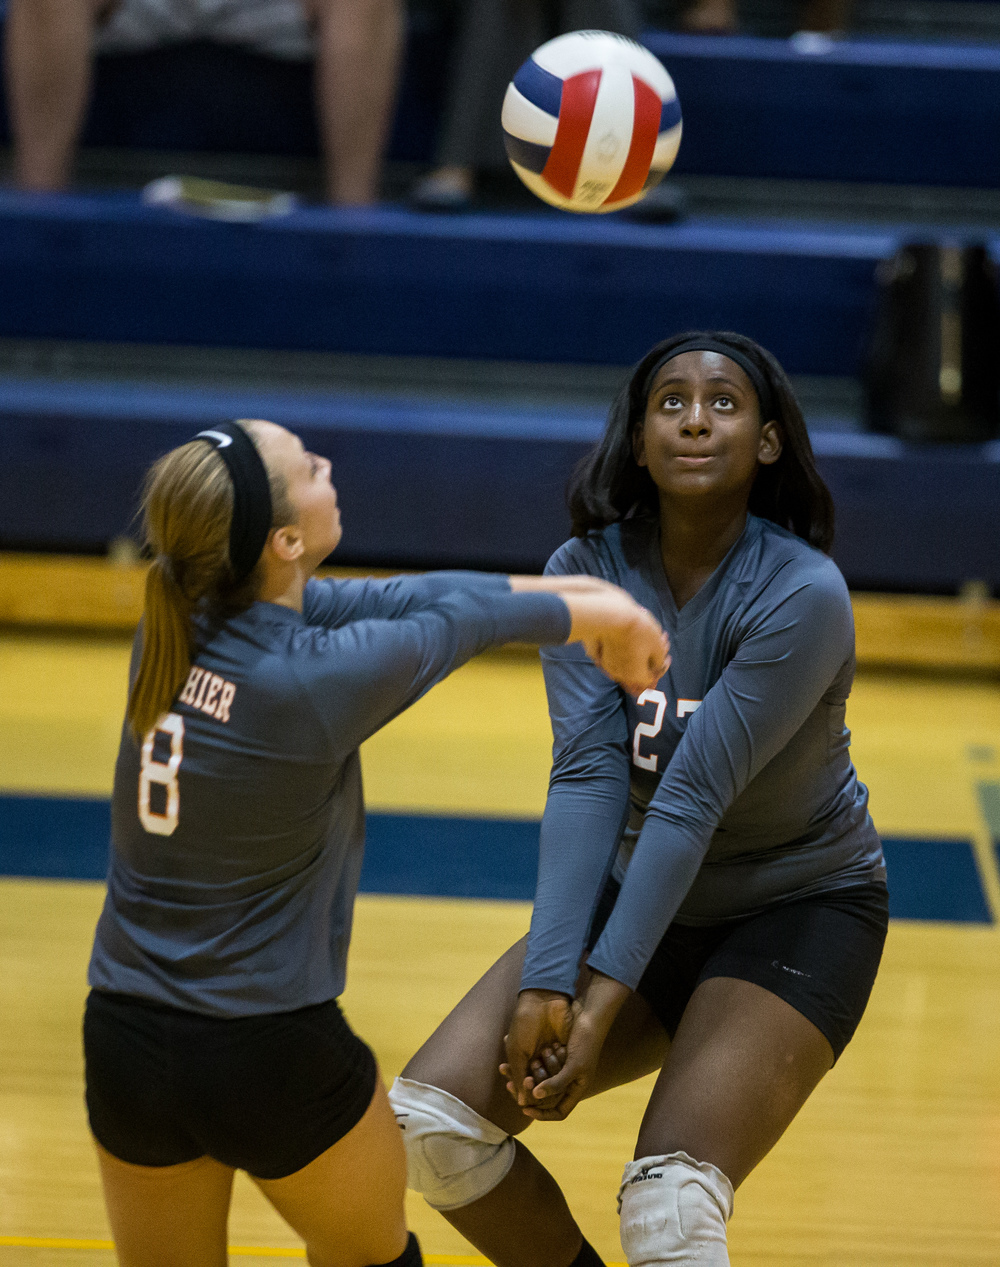 Lanphier's Autumn Tiller (27) and Haley Fitzgerald (8) go for a ball from Southeast during day three of the Girls City Volleyball Tournament at Southeast High School, Thursday, Sept. 24, 2015, in Springfield, Ill. Justin L. Fowler/The State Journal-Register